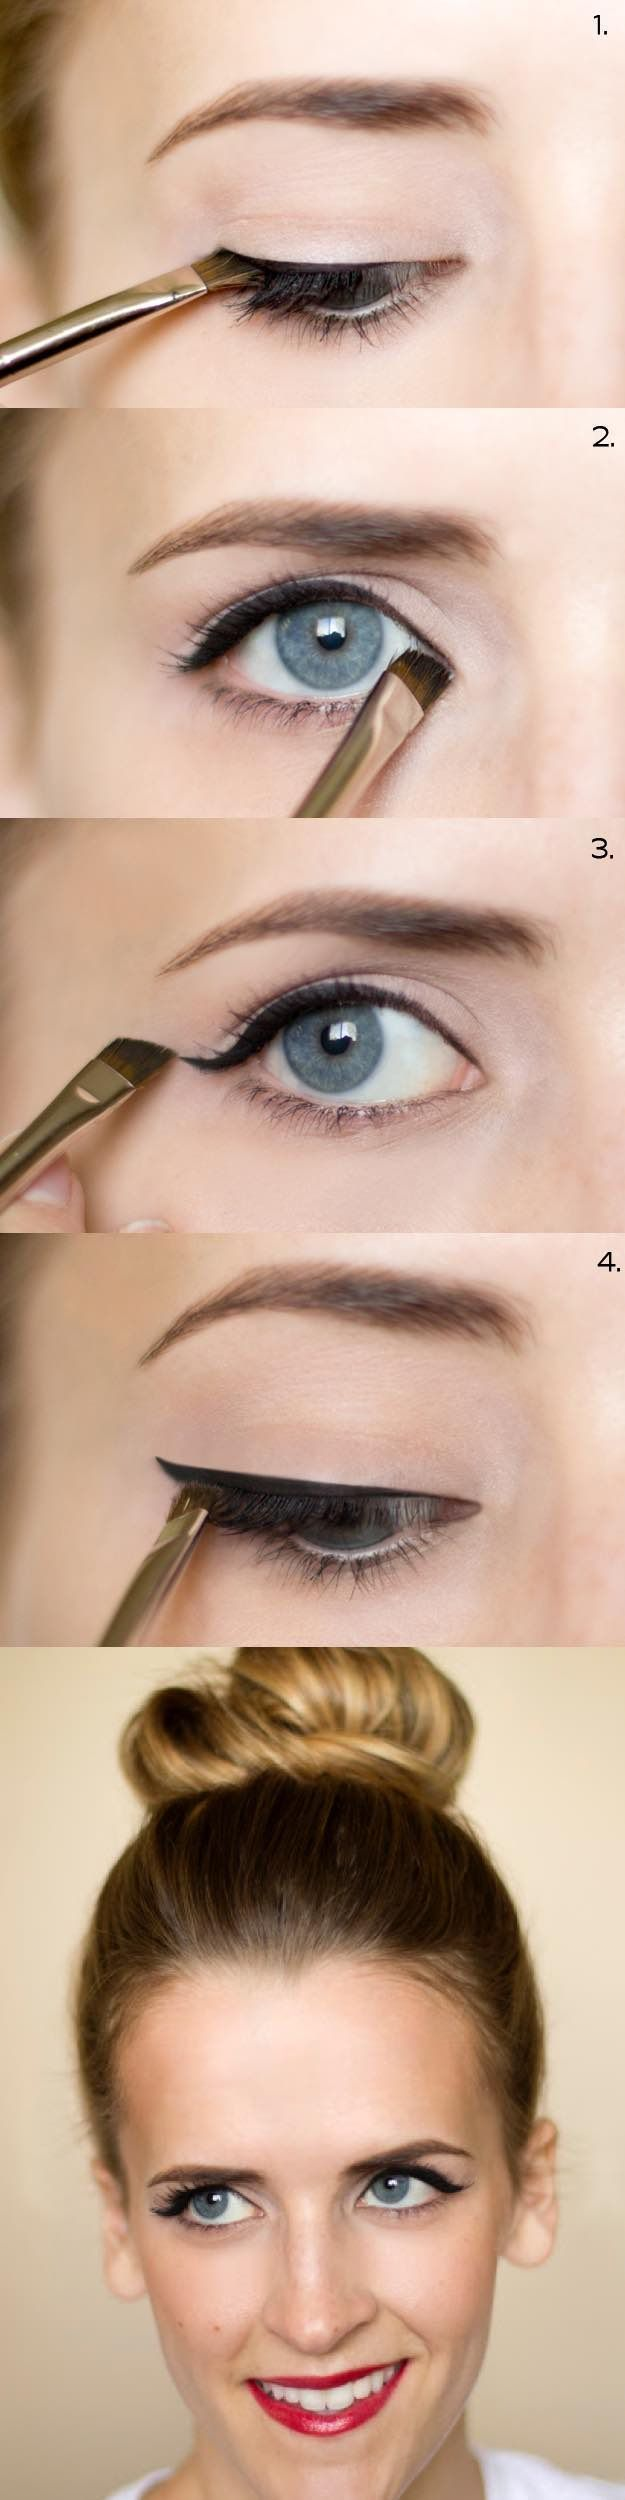 25 Must Know Eyeliner Hacks -How To: Cat Eyeliner -Winged Looks and Easy Makeup Tricks and Guides for Liquid Pencil and Gel Styles. Step by Step Tutorials with Pictures using Tape or a Spoon thegoddess.com/eyeliner-hacks #wingedlinertricks #makeuplooksstepbystep